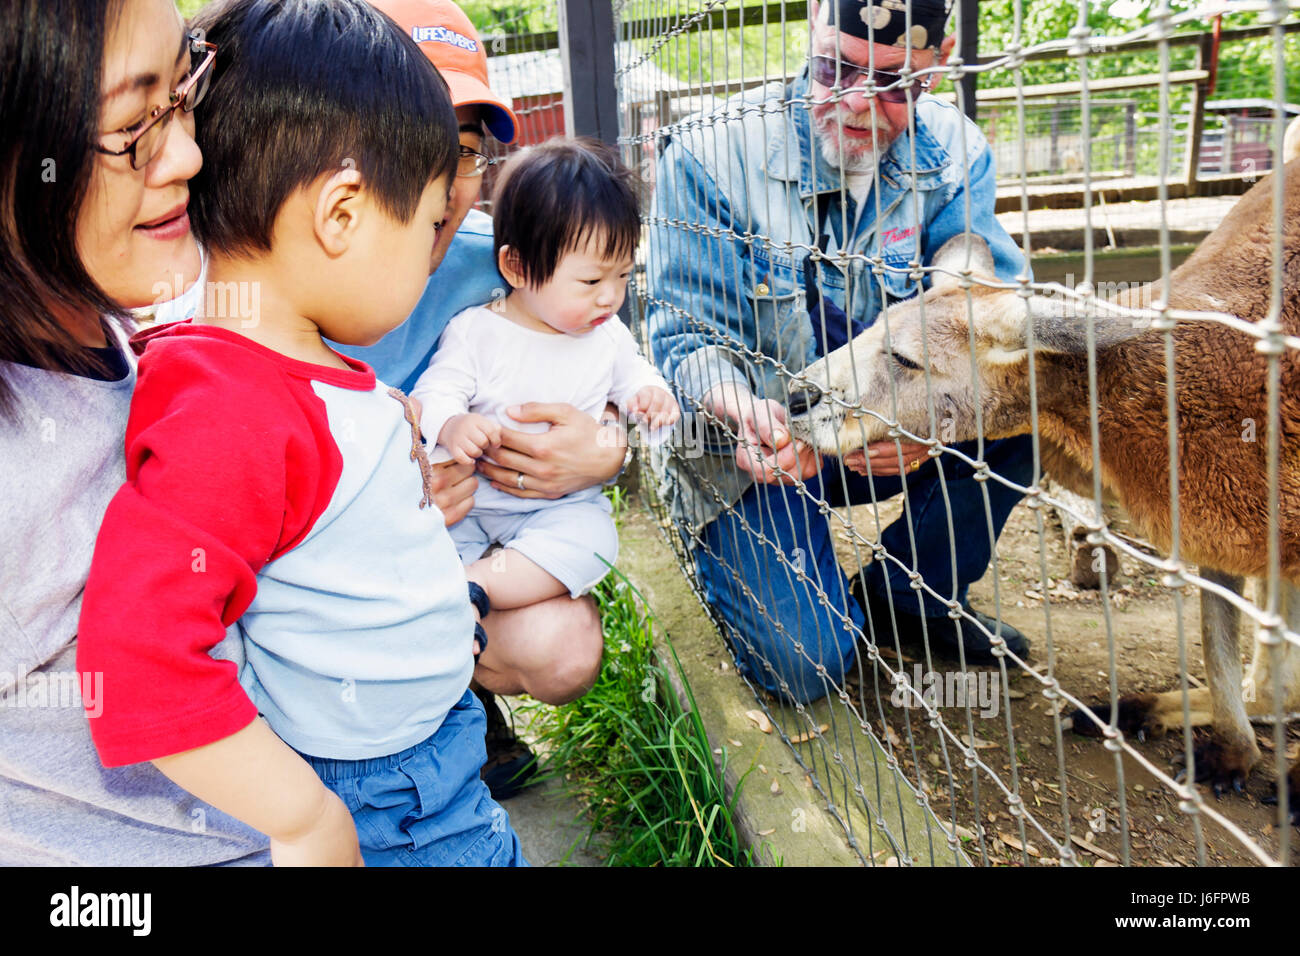 Tennessee Sevierville Smoky Mountain Deer Farm and Exotic Petting Zoo kangaroo Asian man woman boy girl baby family - Stock Image